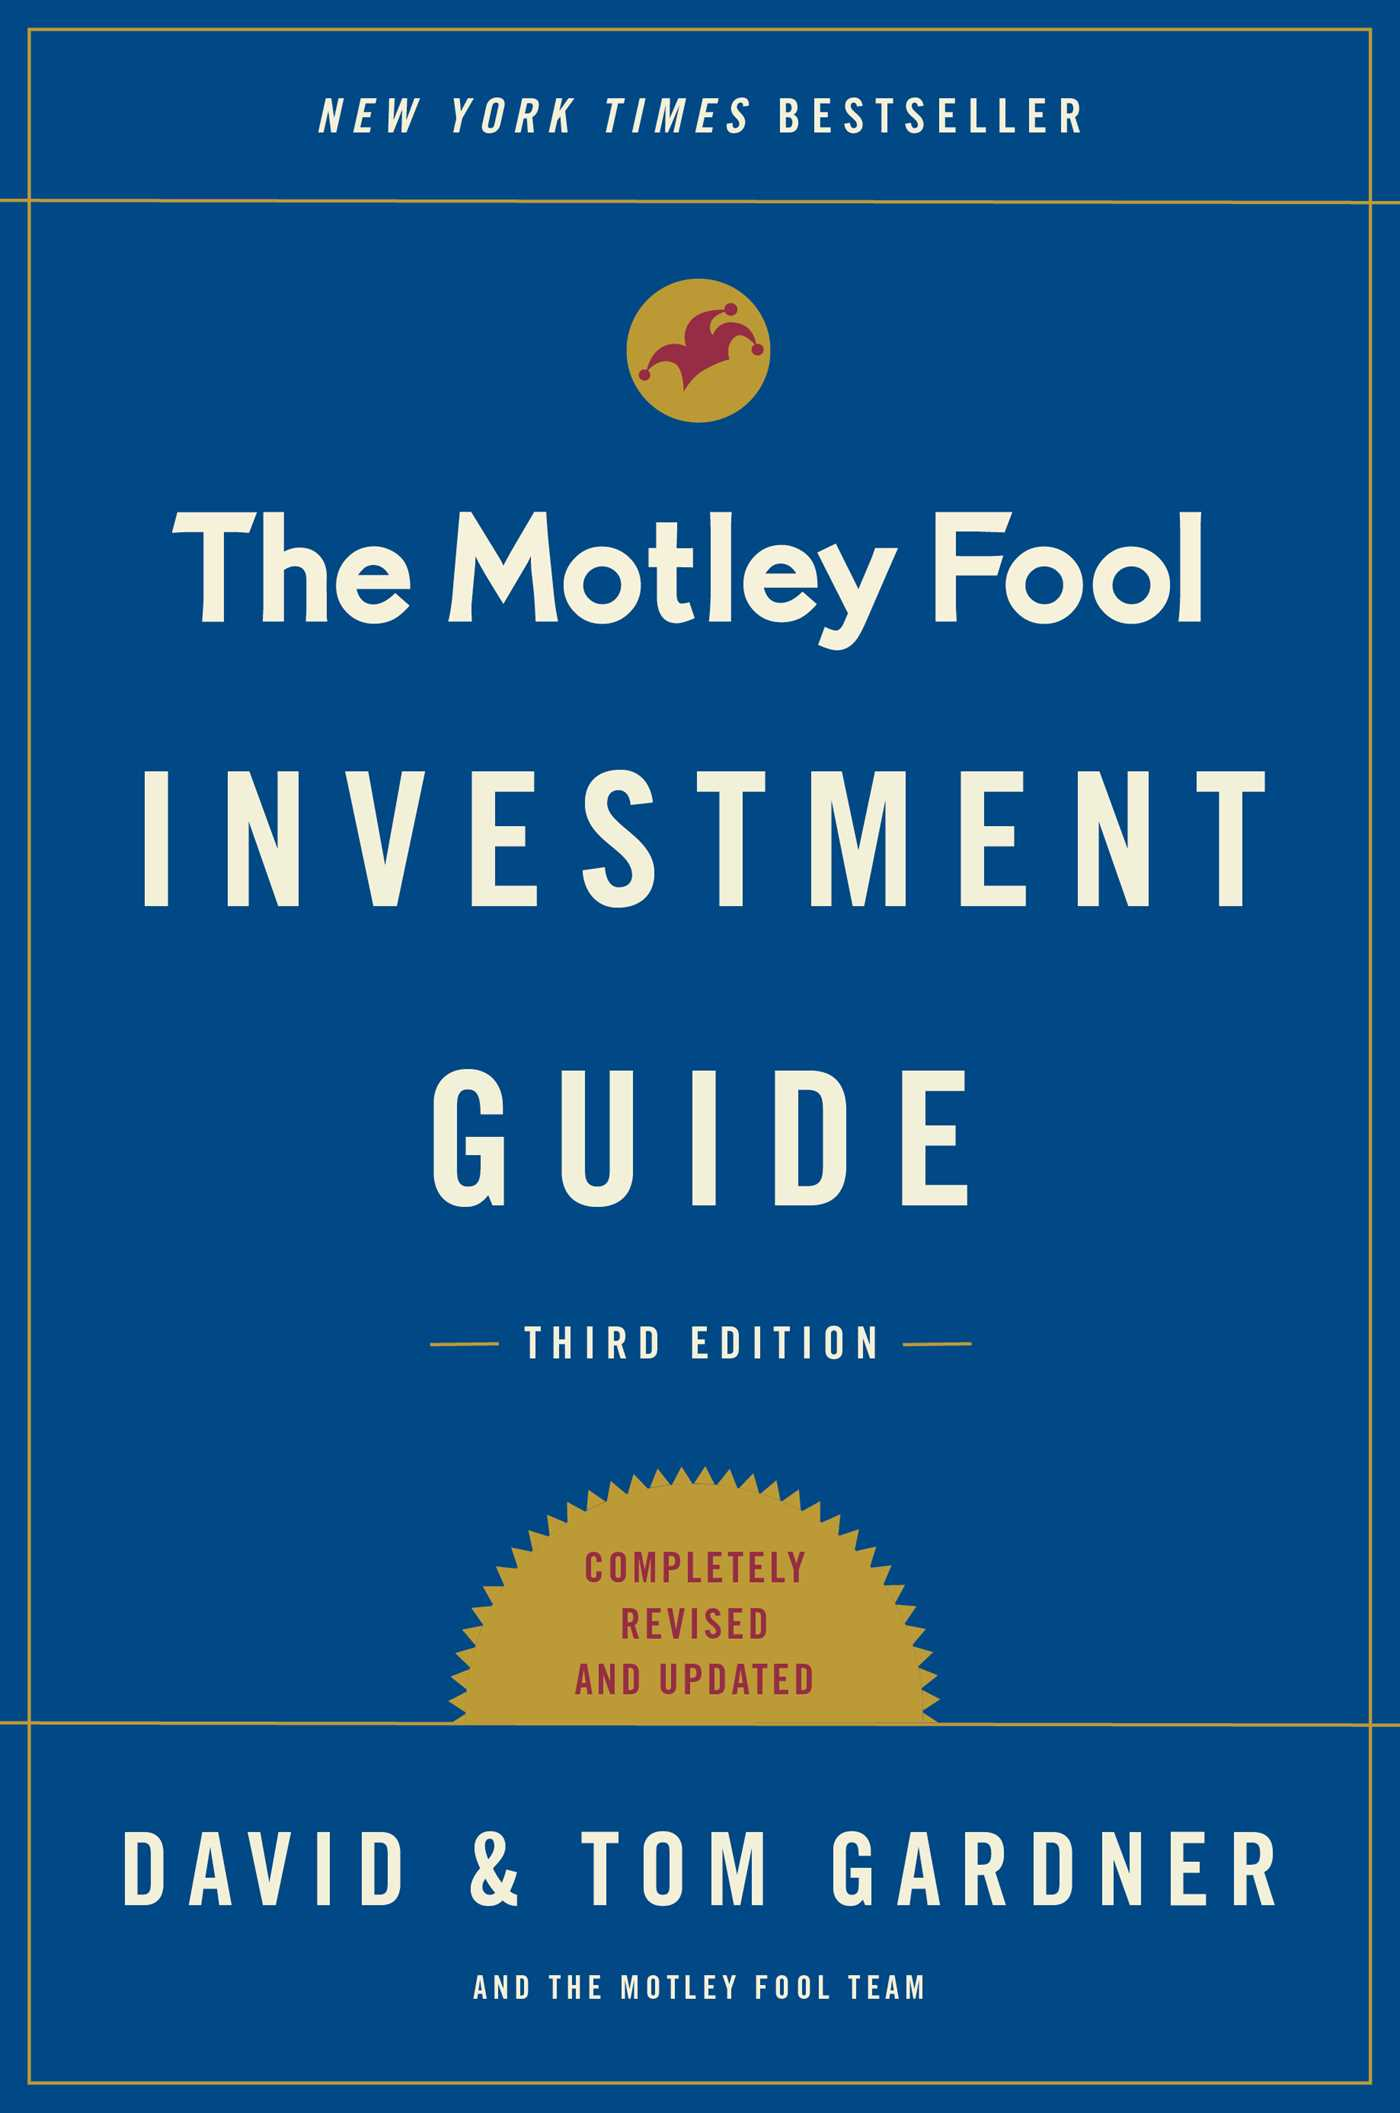 The motley fool investment guide third edition 9781501155550 hr